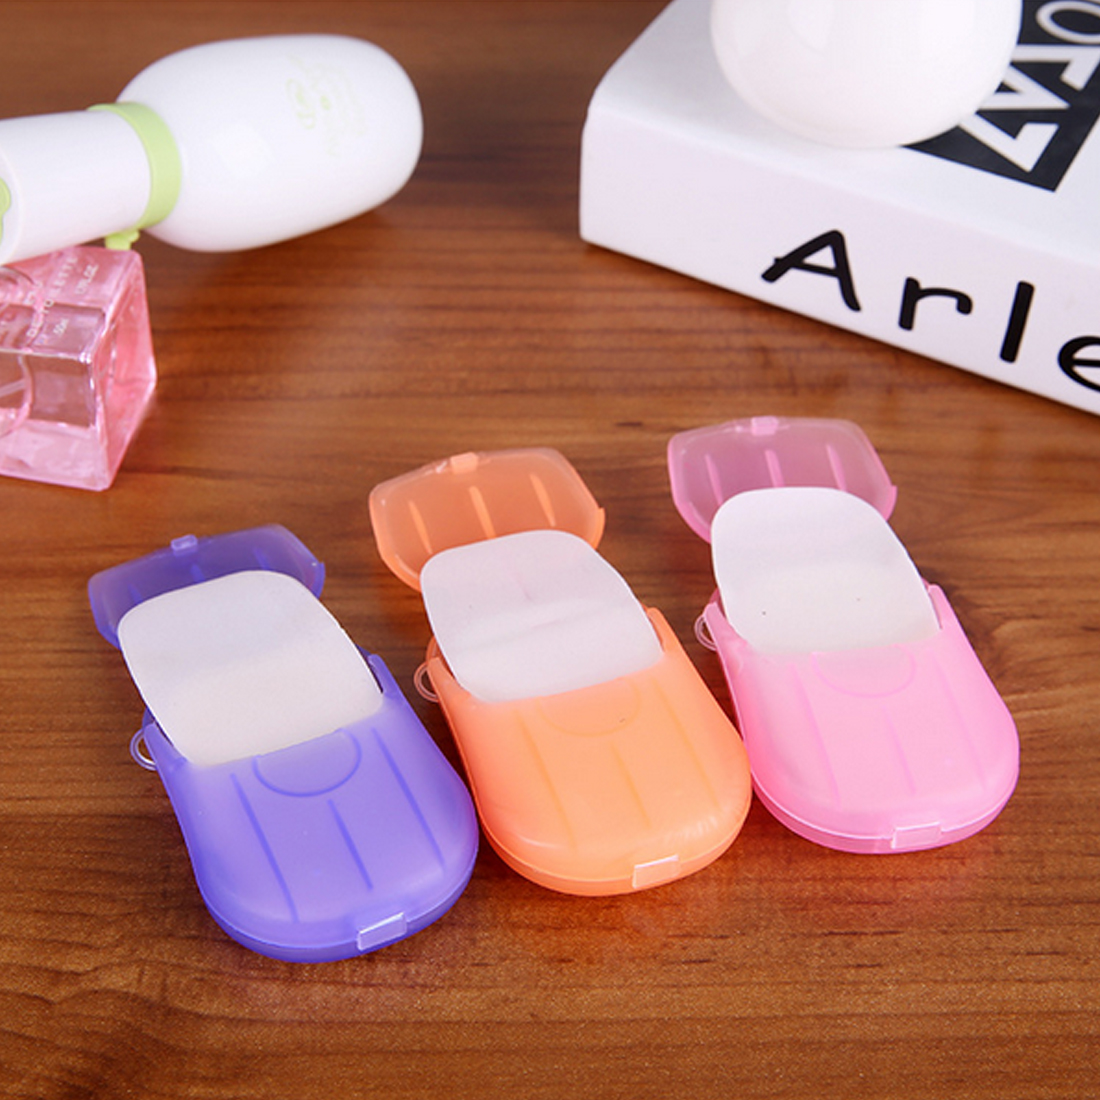 Bath & Shower Stars Shape Convenient Washing Cleaning Hand Paper Soap Anti-bacterial Portable Soap For Travel Camping Hiking Soap